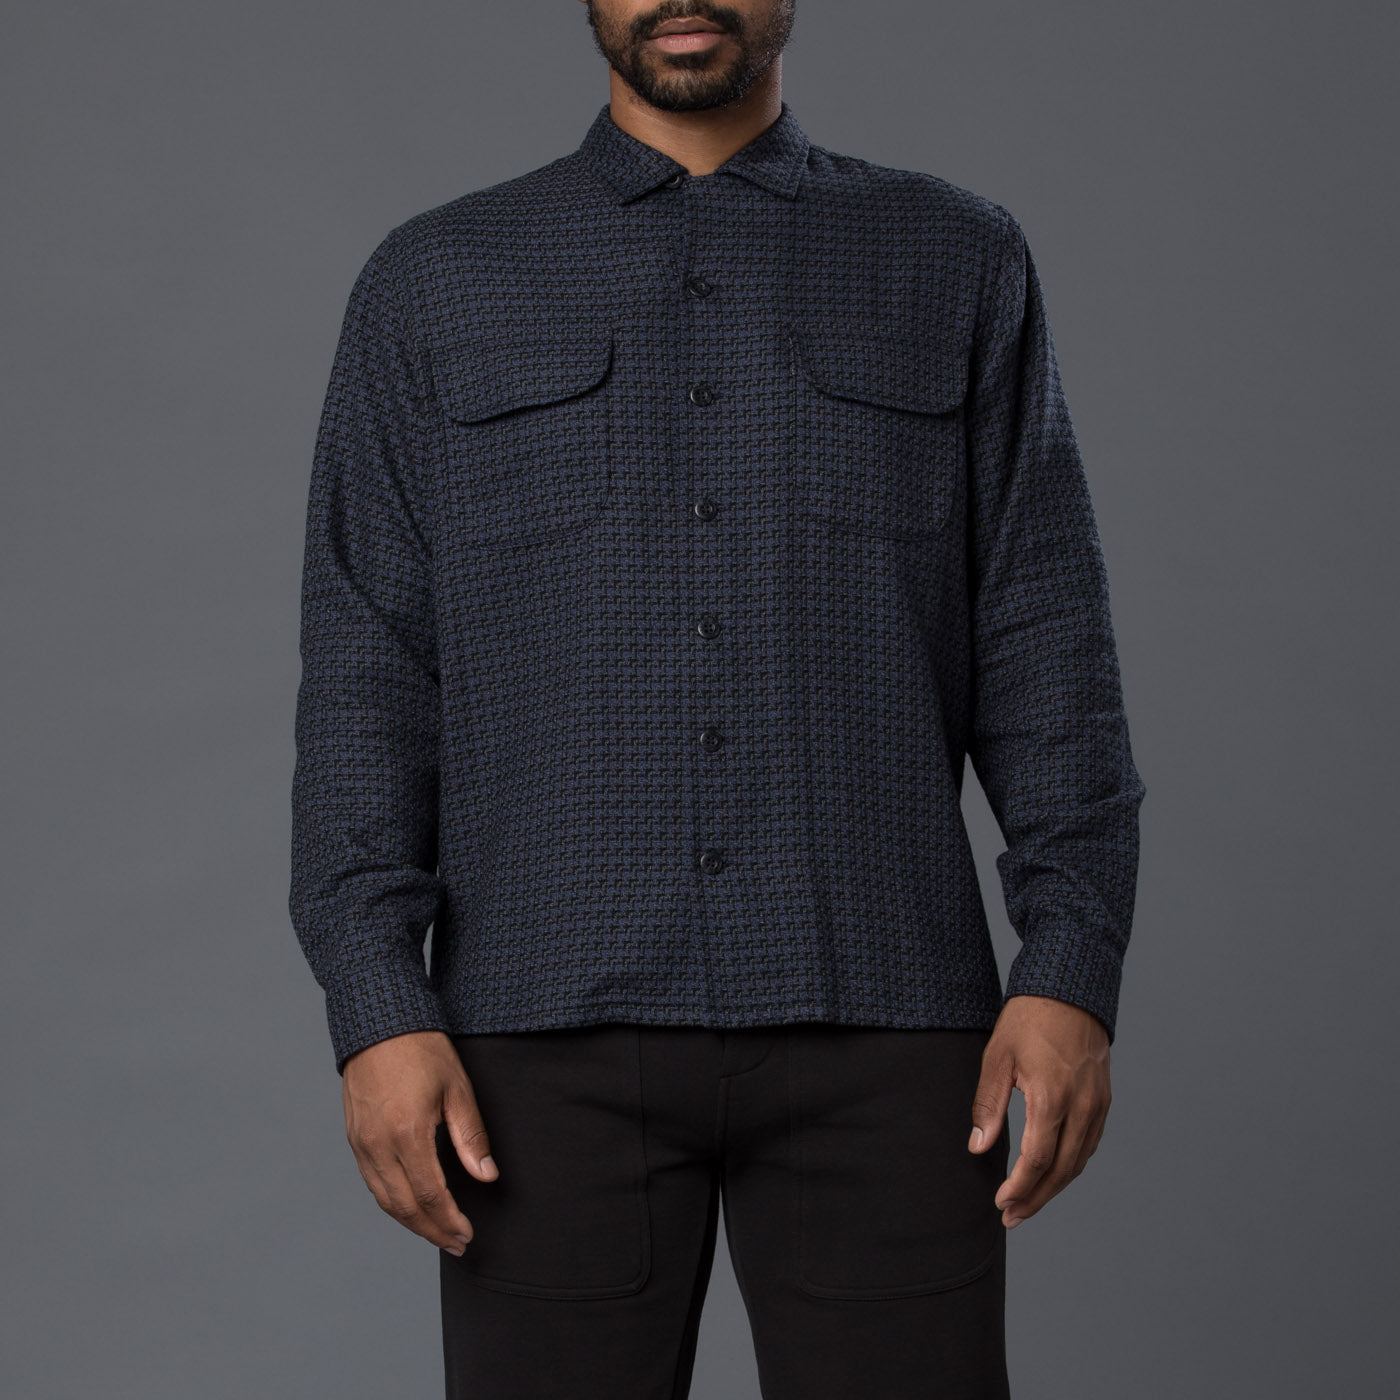 Krammer & Stoudt Jacquard Cesar Two-Pocket Shirt